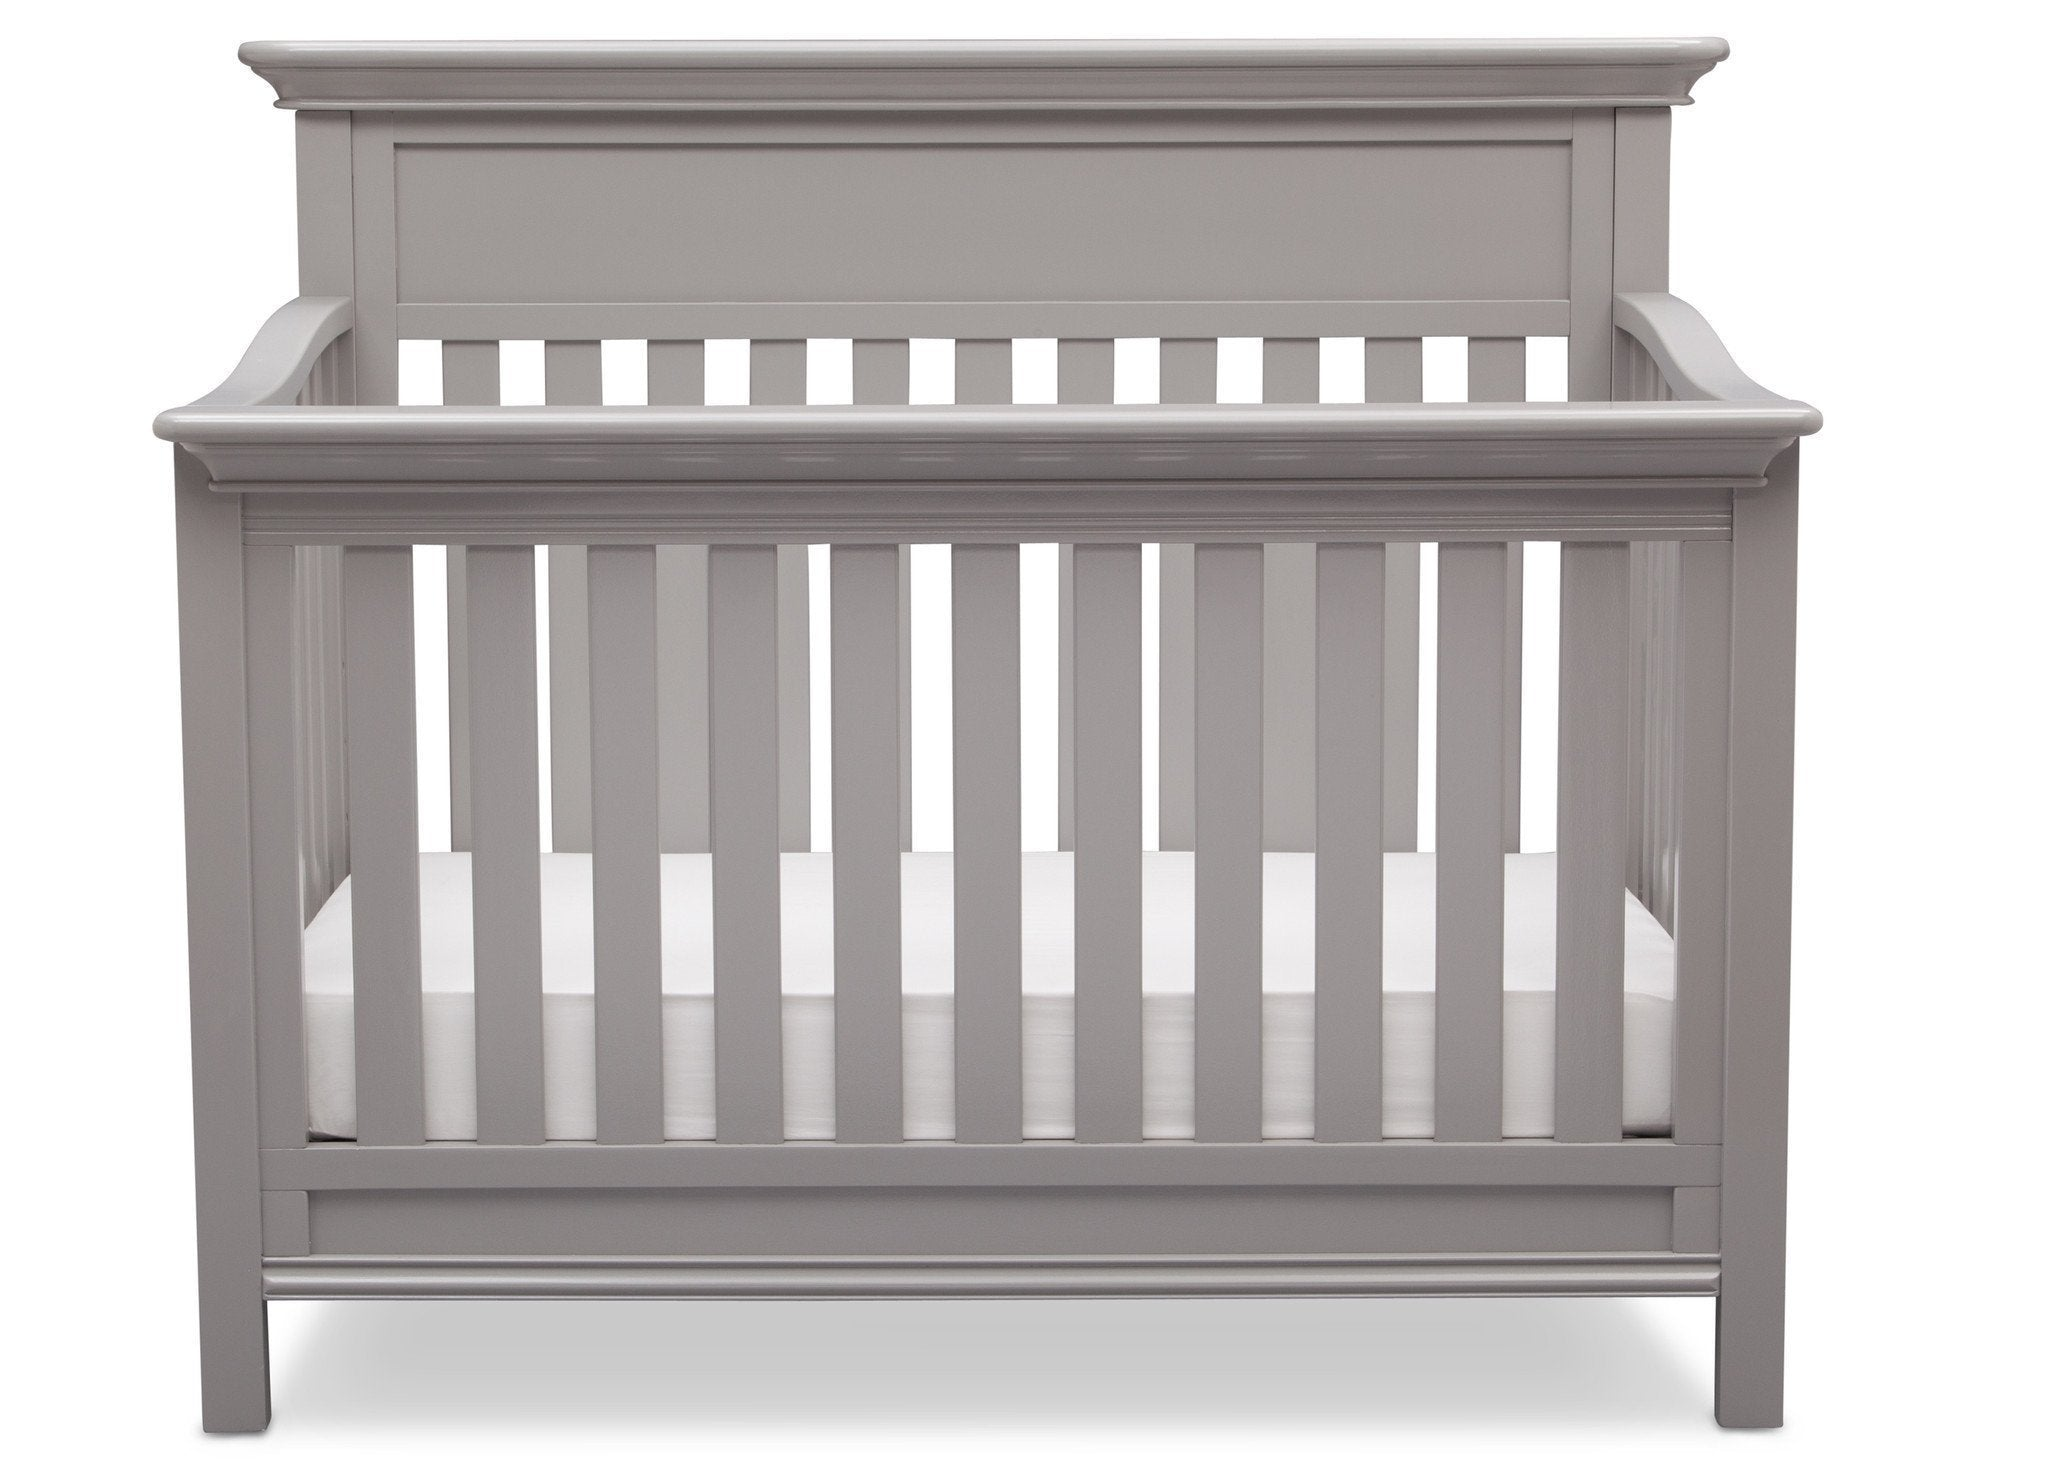 Serta Grey (026) Fernwood 4-in-1 Crib, Front View with Crib Conversion b3b